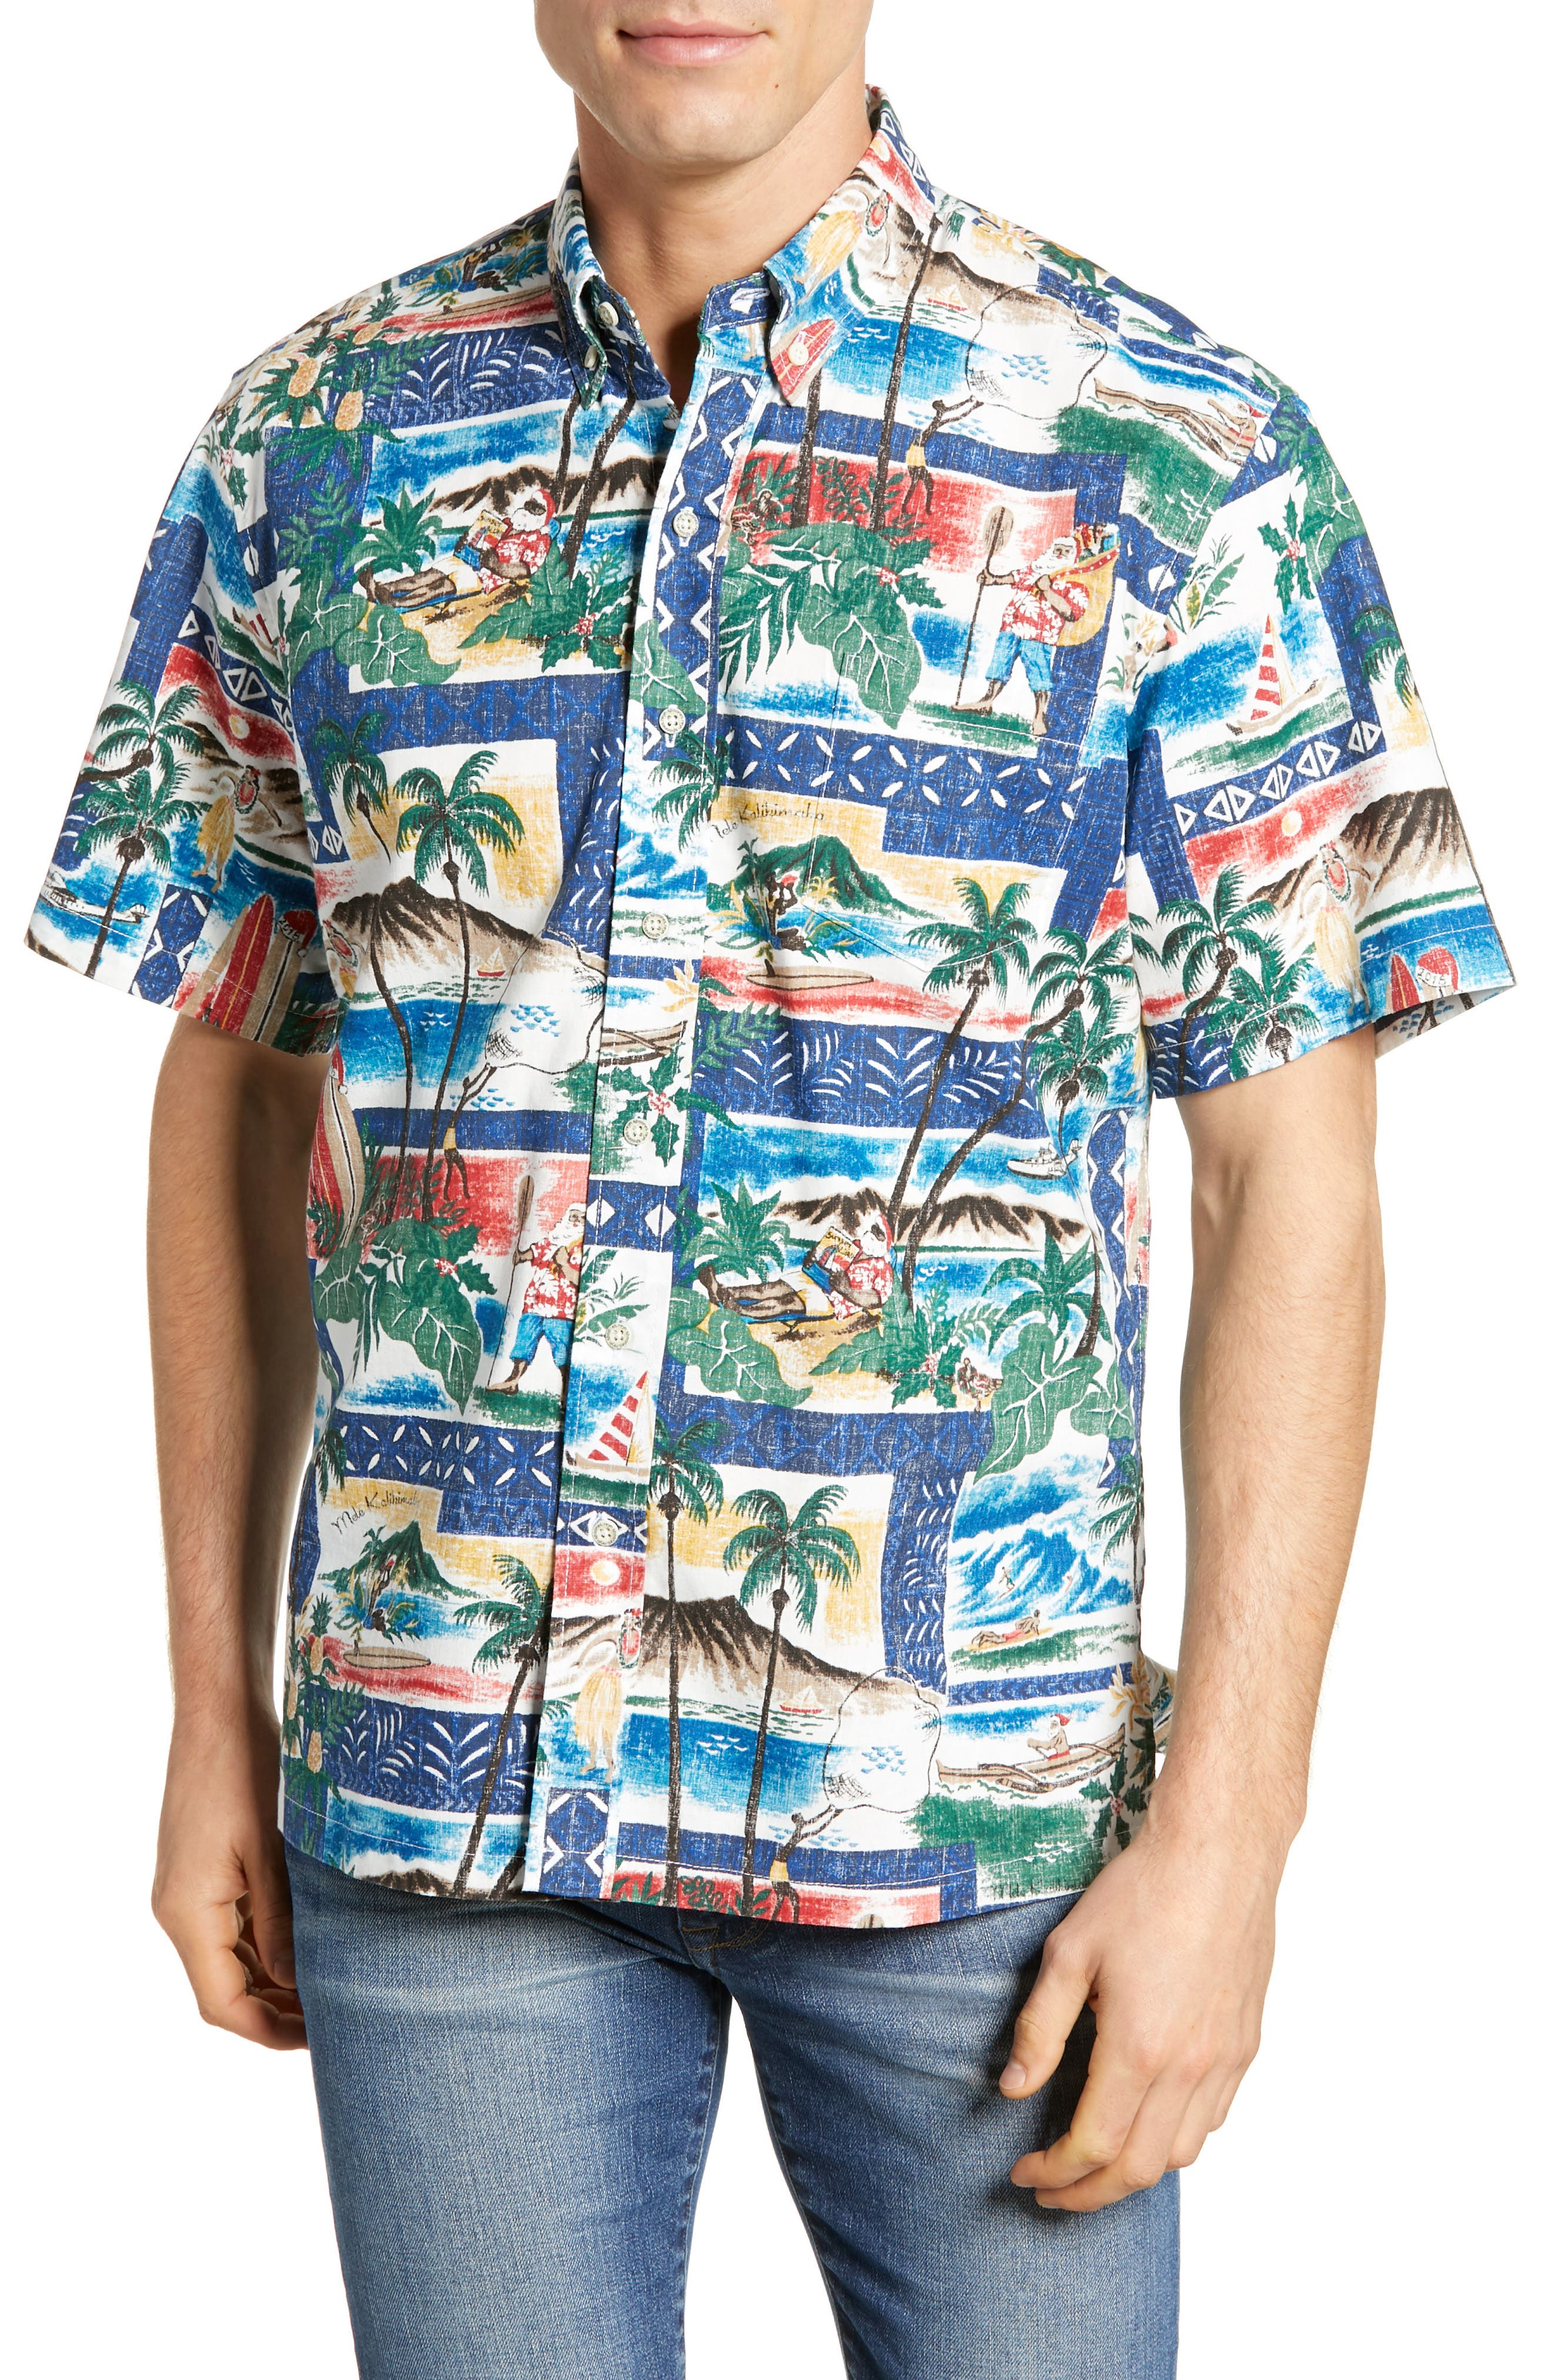 Reyn Spooner Hawaiian Christmas 2018 Classic Fit Sport Shirt, Blue